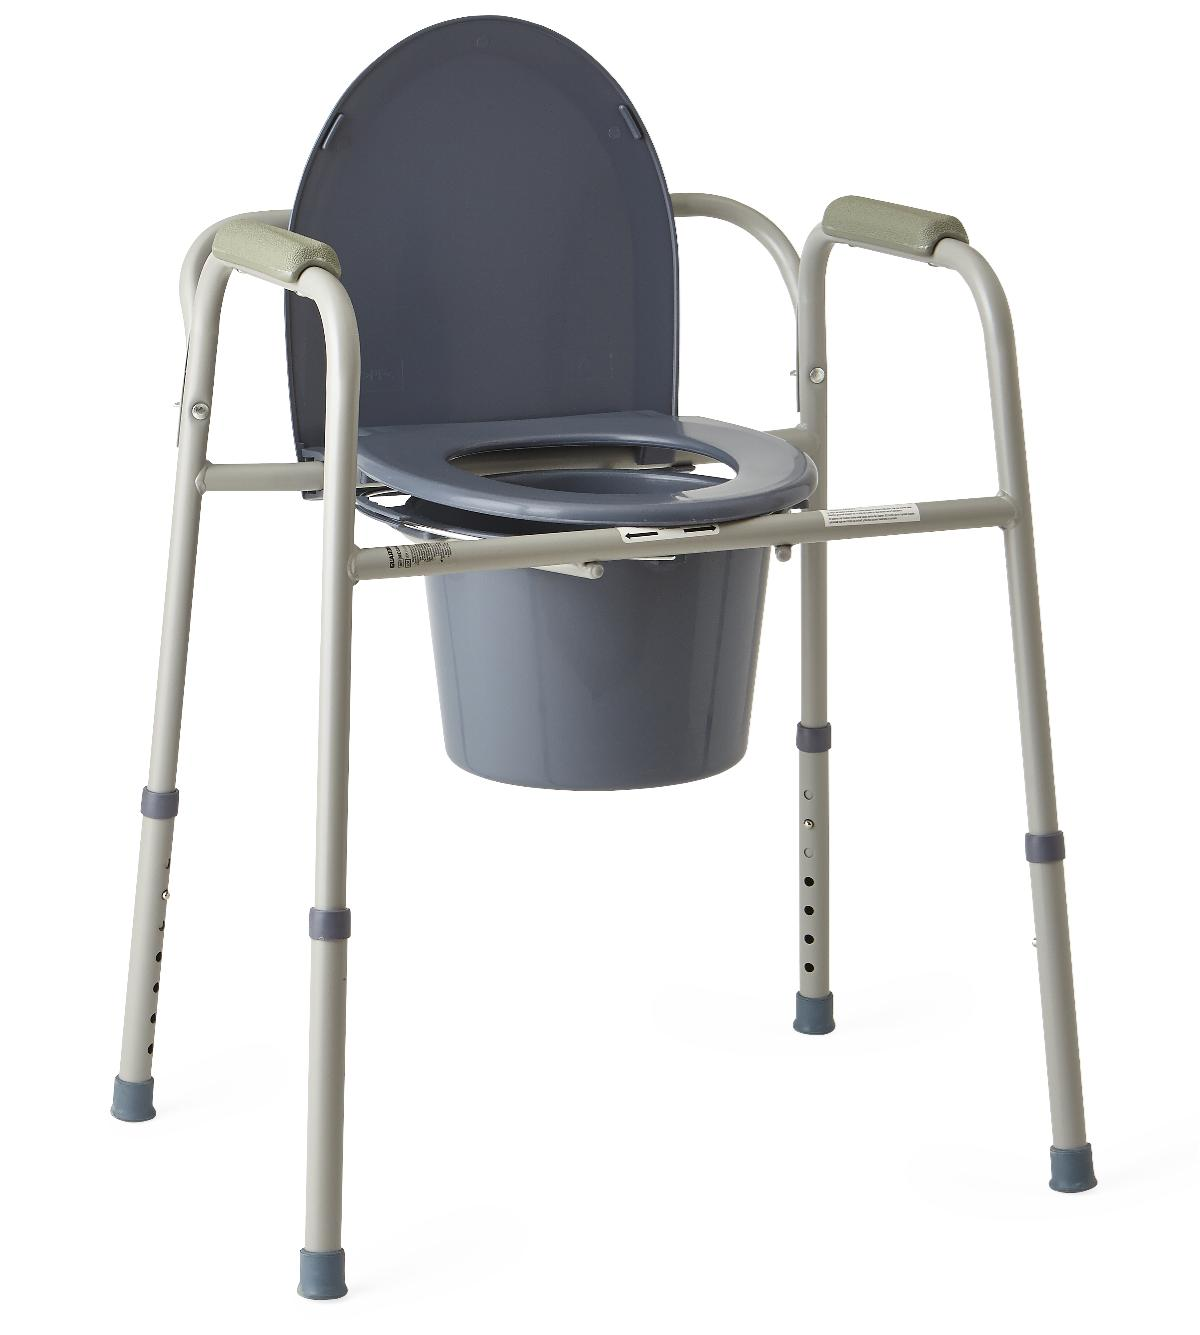 Commode Chair Stationary Adjustable Height « Medical Mart